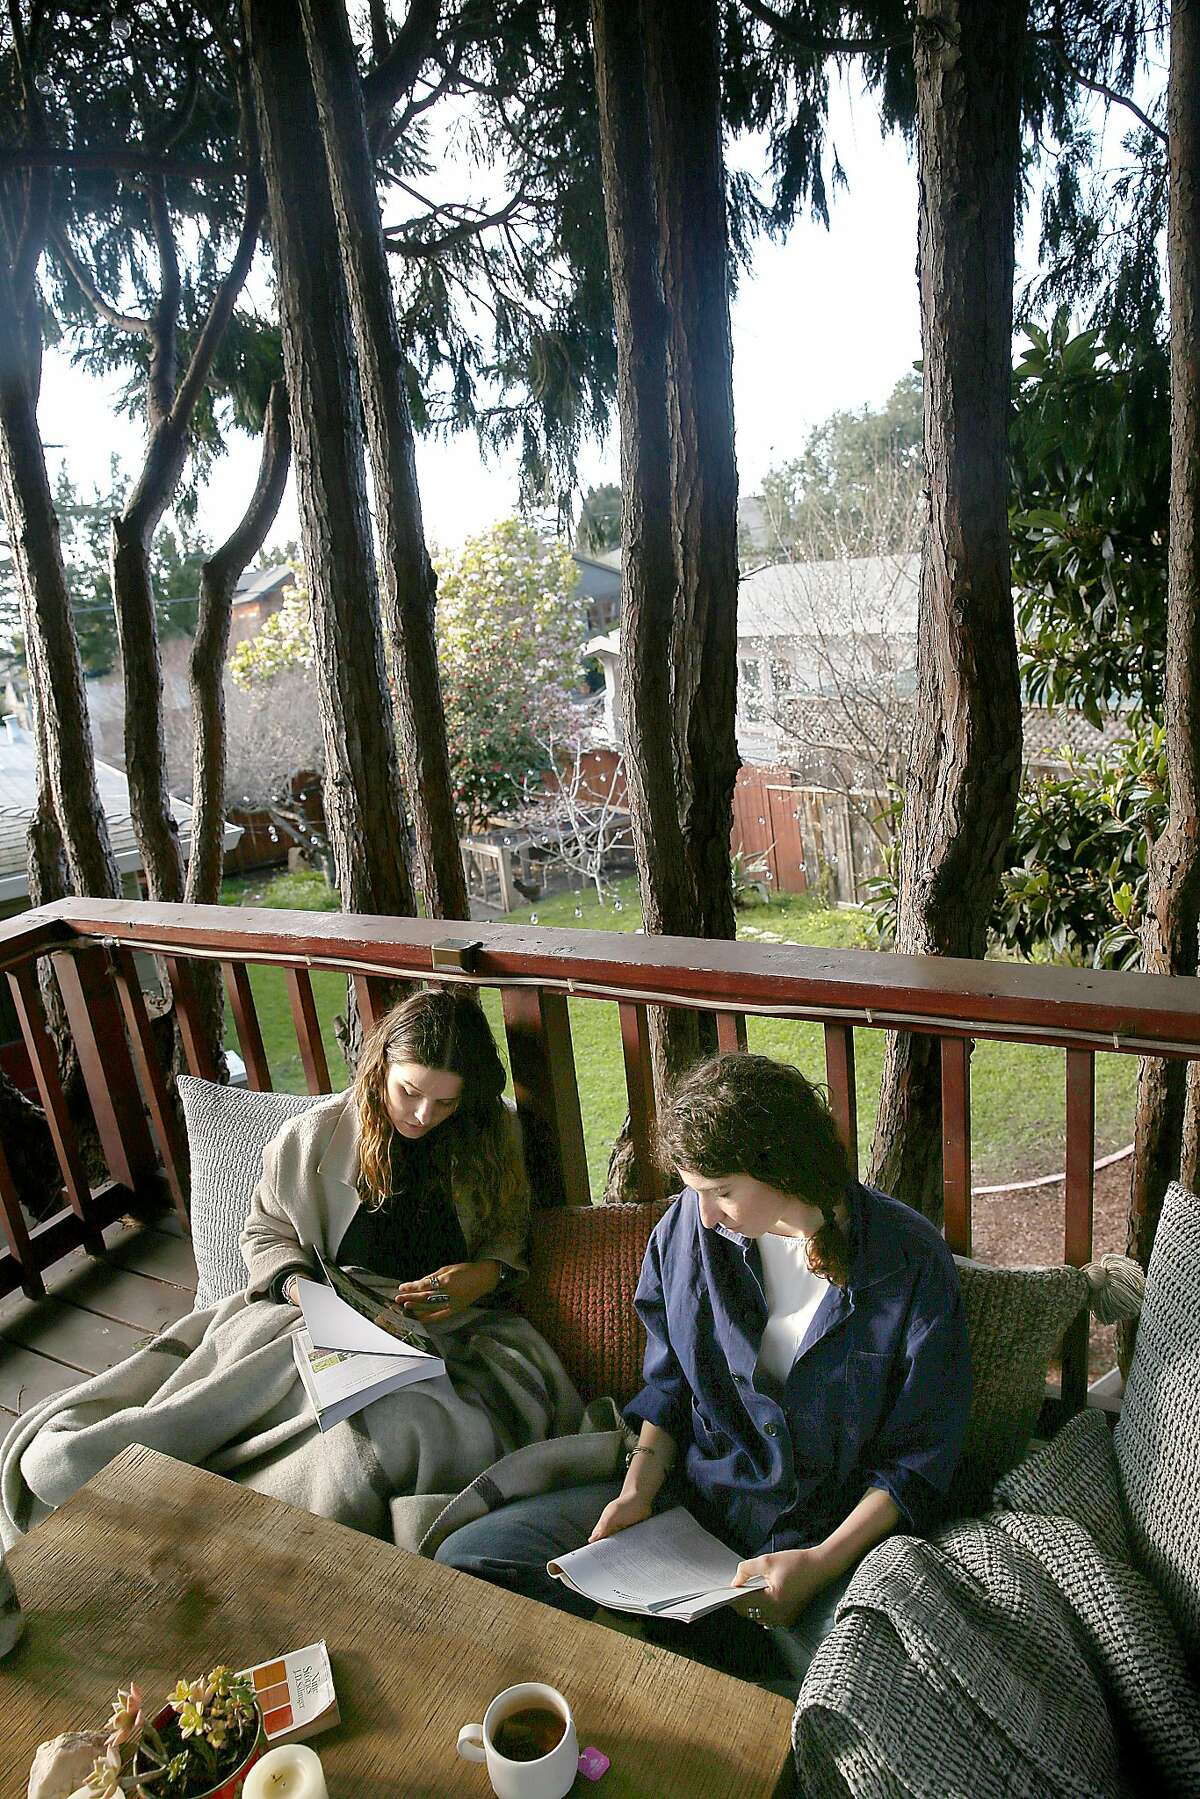 Lauren Tackberry and room mate Austin Sherman on the treehouse in the yard on Thursday, February 22, 2018, in Berkeley, Calif.